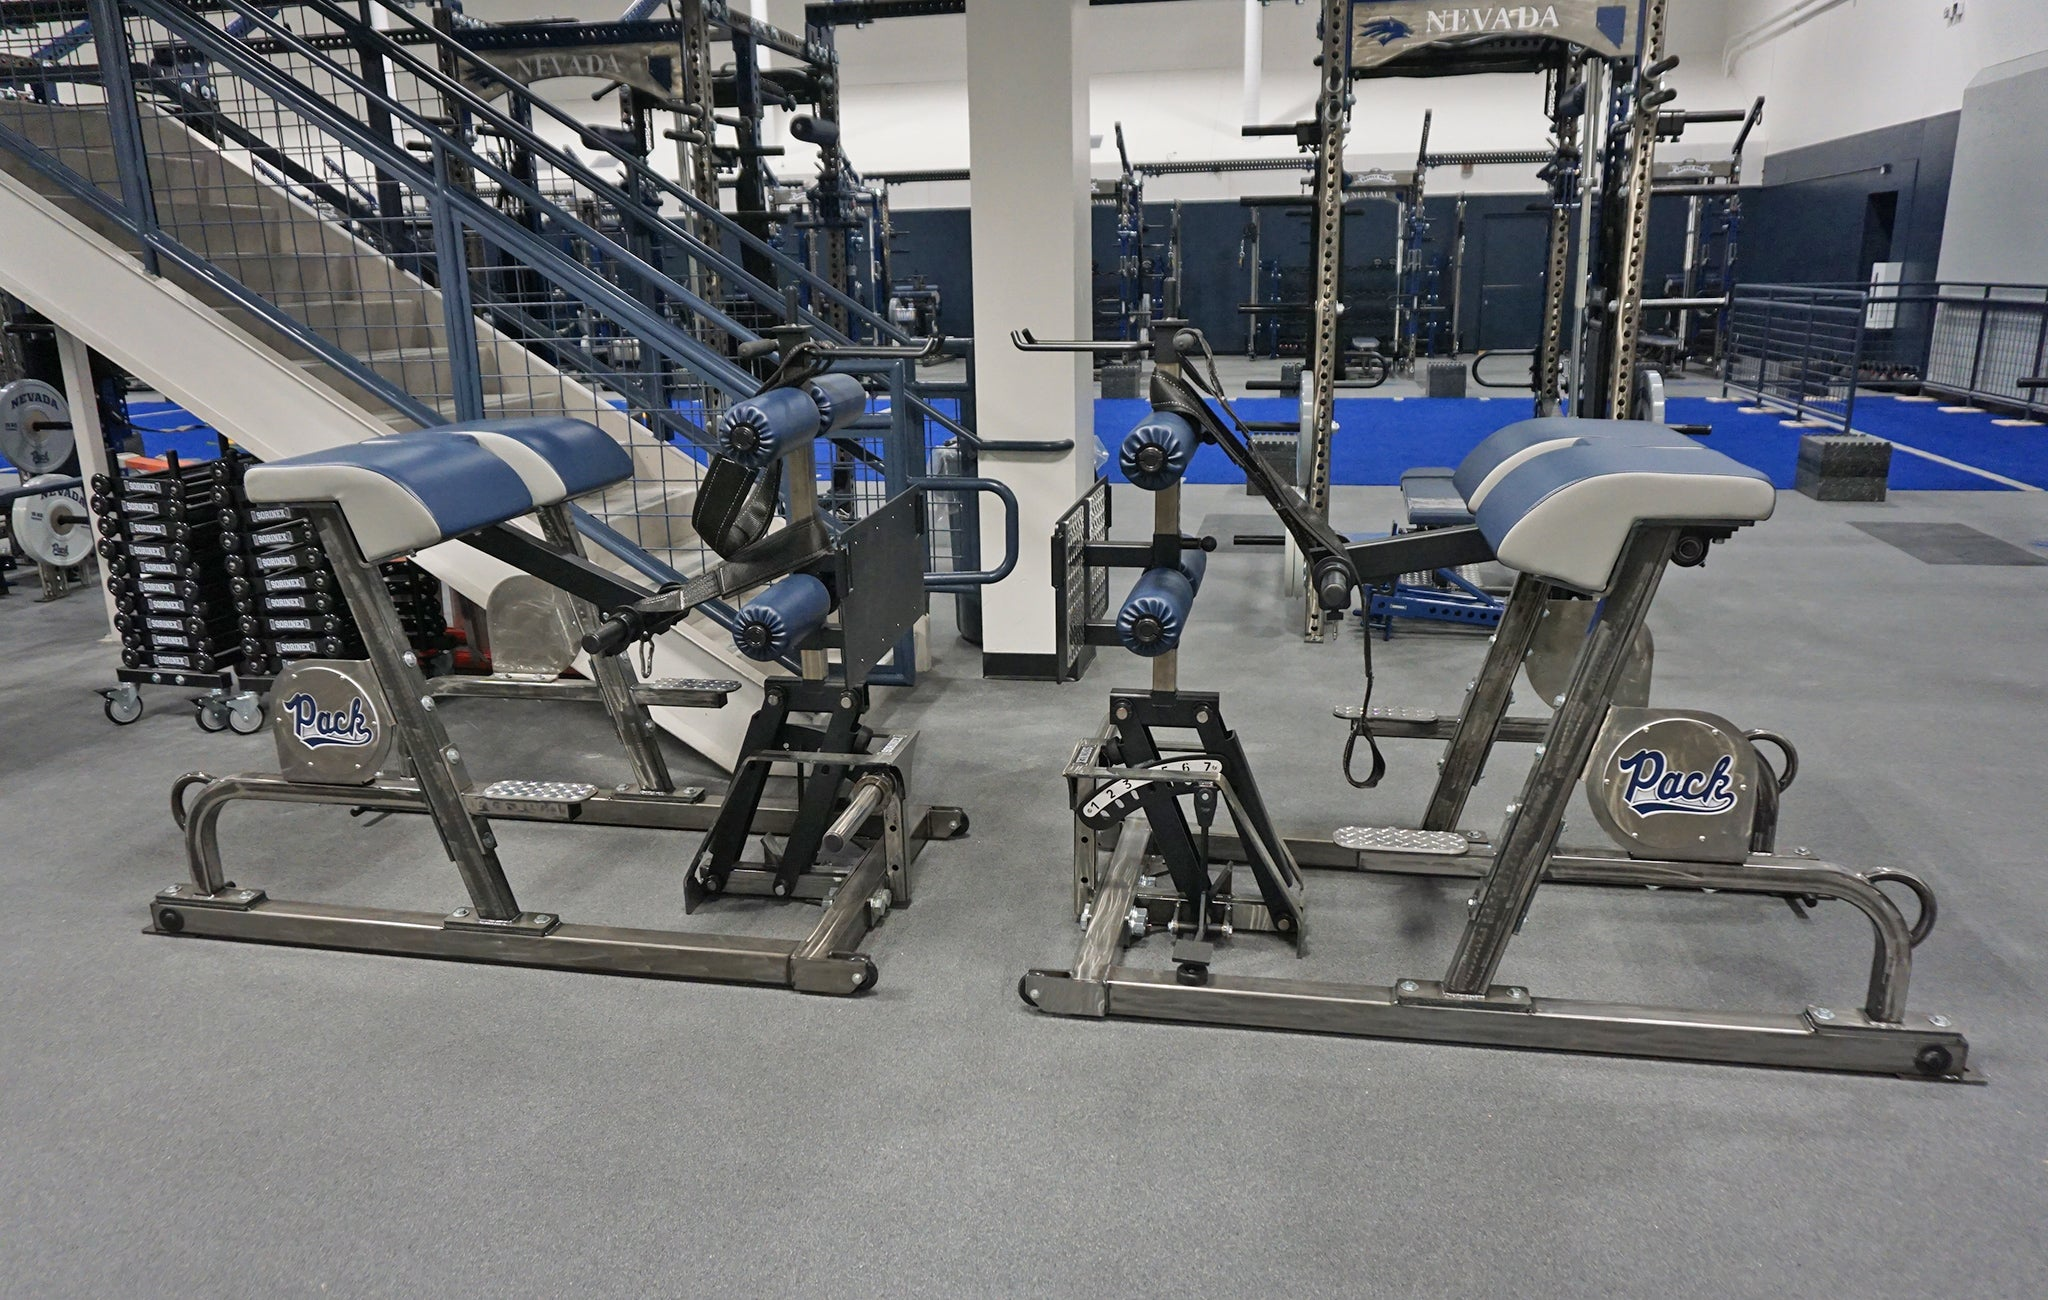 Nevada Weight Room